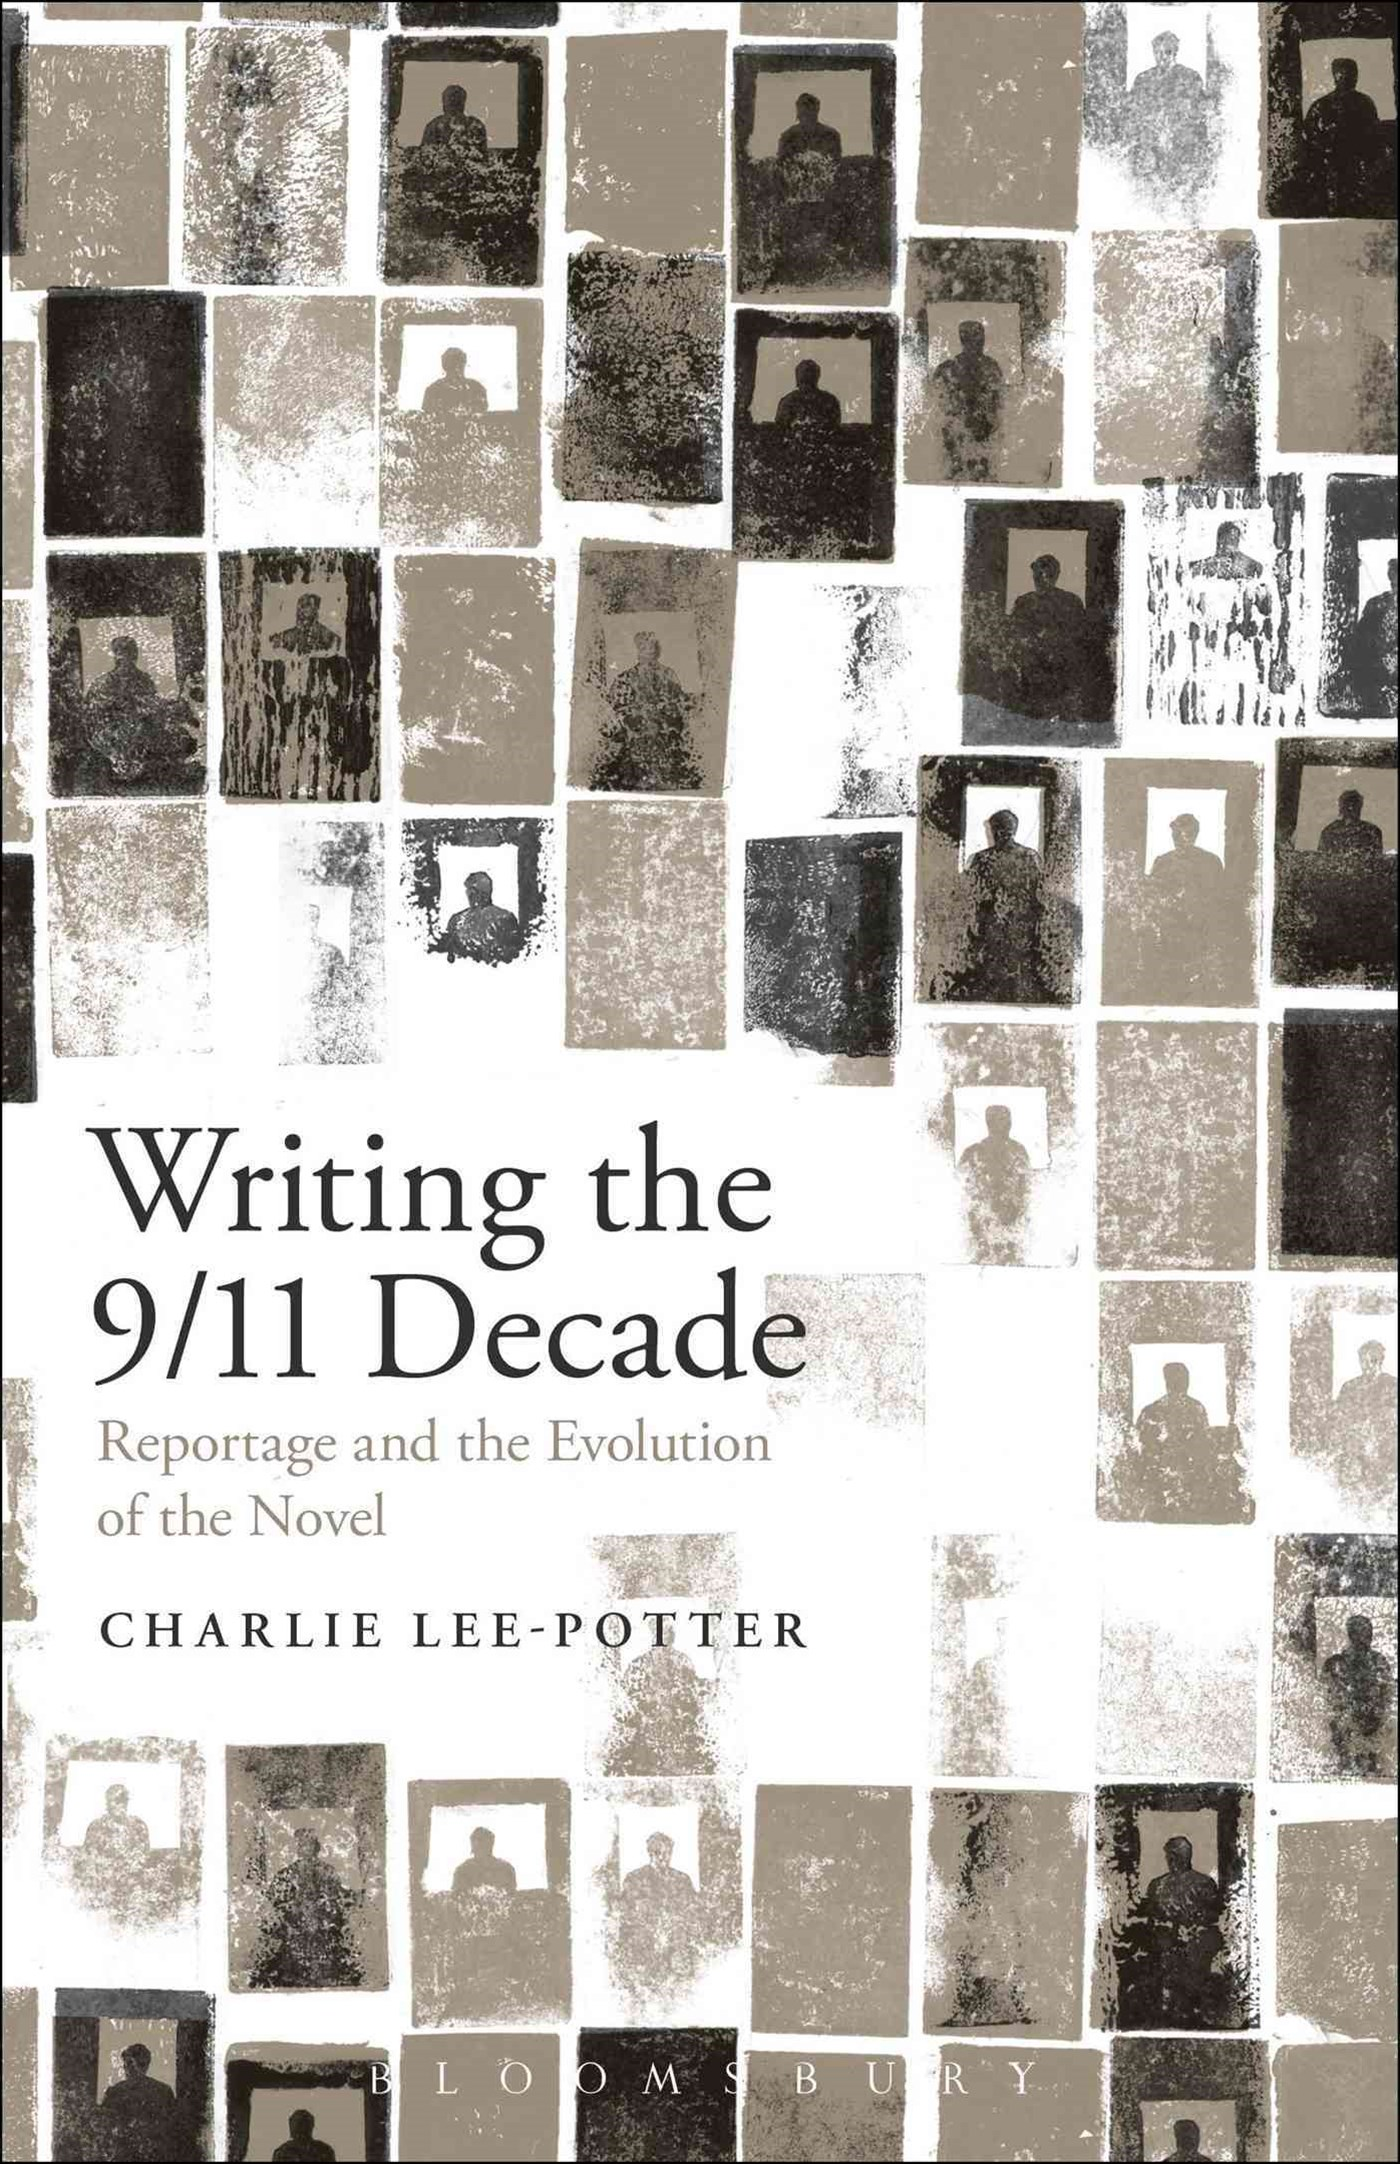 Writing the 9/11 Decade